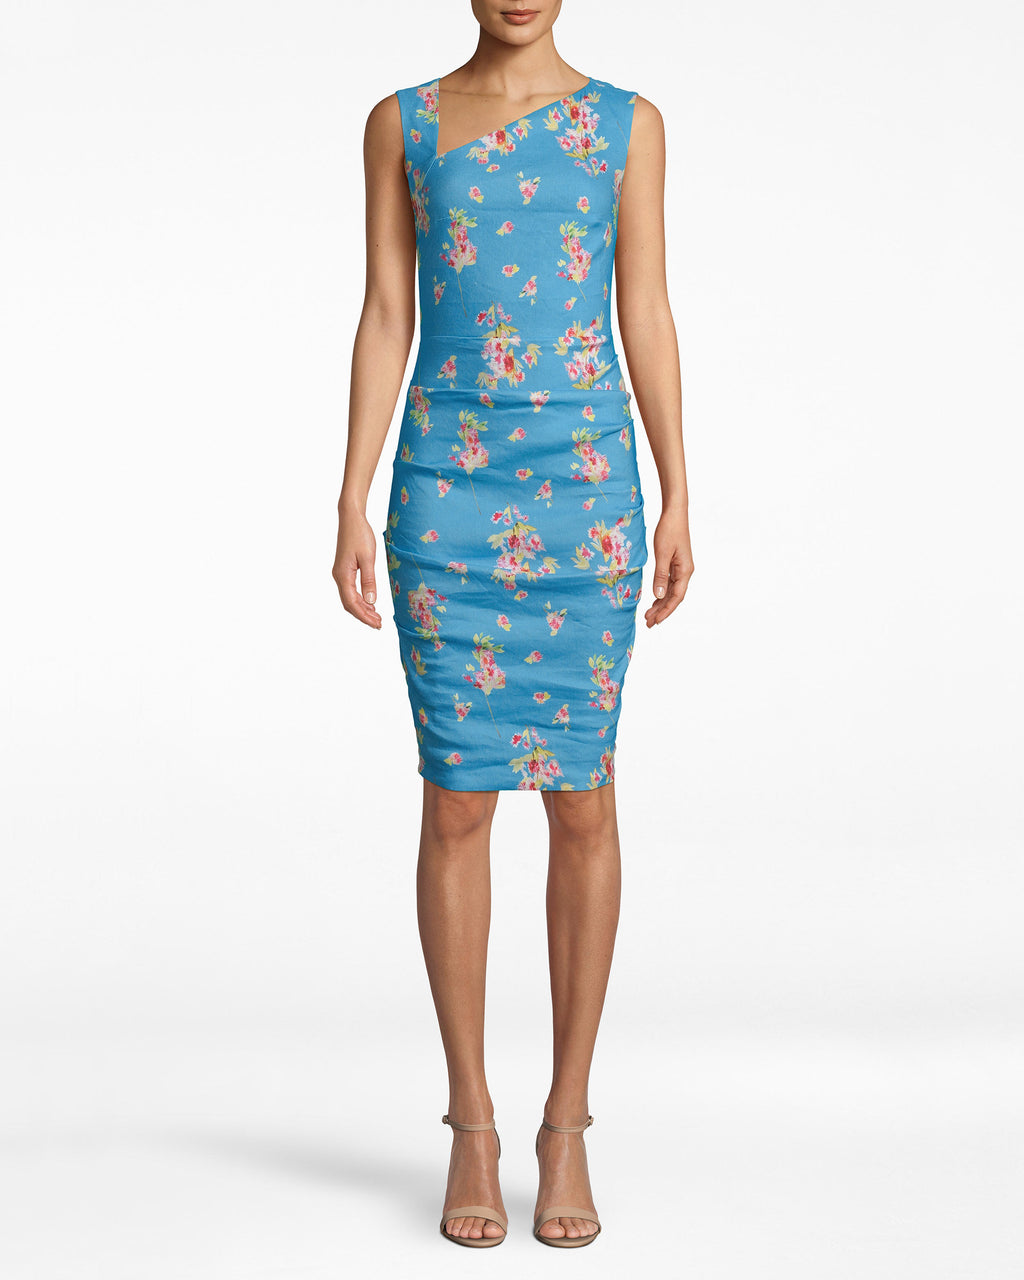 BM20107 - BAHAMA BLUE ASYMMERTICAL TUCK DRESS - dresses - short - MAKE A STATEMENT IN THIS BRIGHT BLUE ASYMMETRICAL TUCK DRESS. FEATURING A FUN FLORAL PATTERN AND SHARP NECKLINE, THIS DRESS IS SURE TO BE A SHOW STOPPER. GATHERING IN THE FRONT AND RUCHING DOWN THE BACK FOR A SLIMMING FIT.